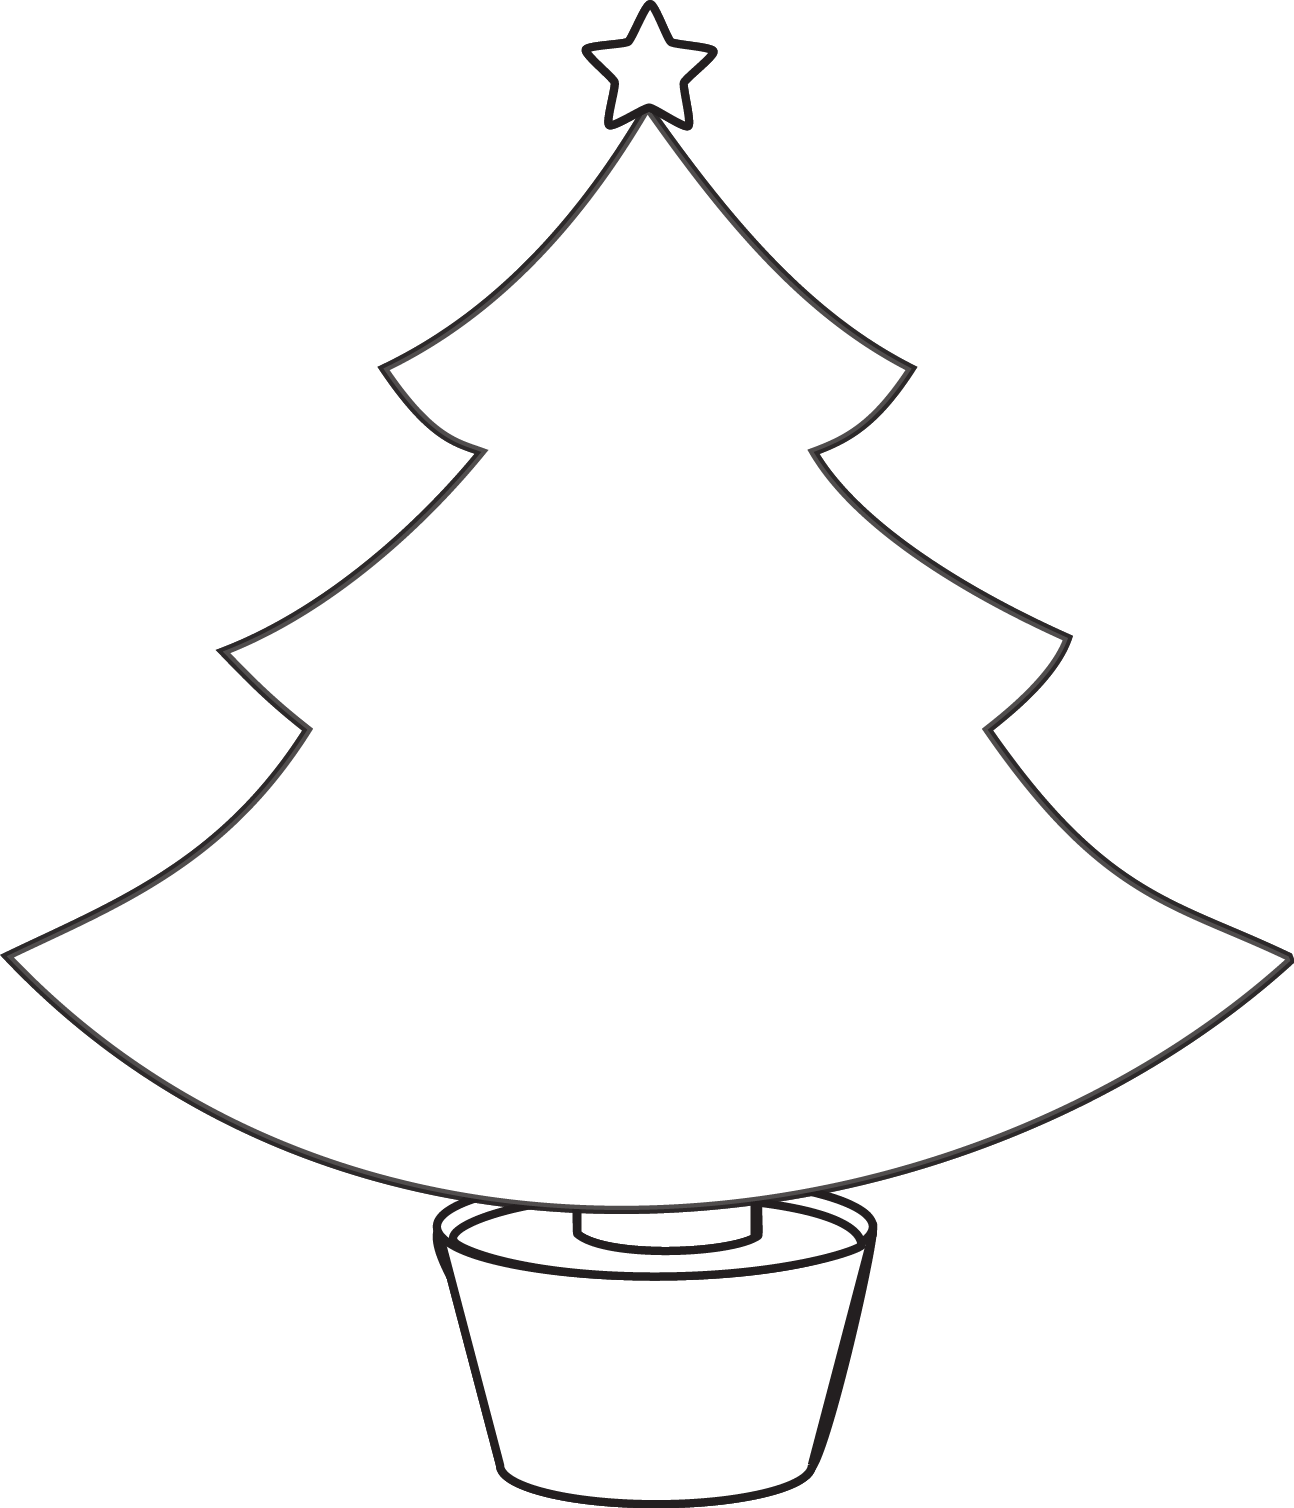 Big Christmas Tree Coloring Pages Printable With Free Line Drawing Download Clip Art